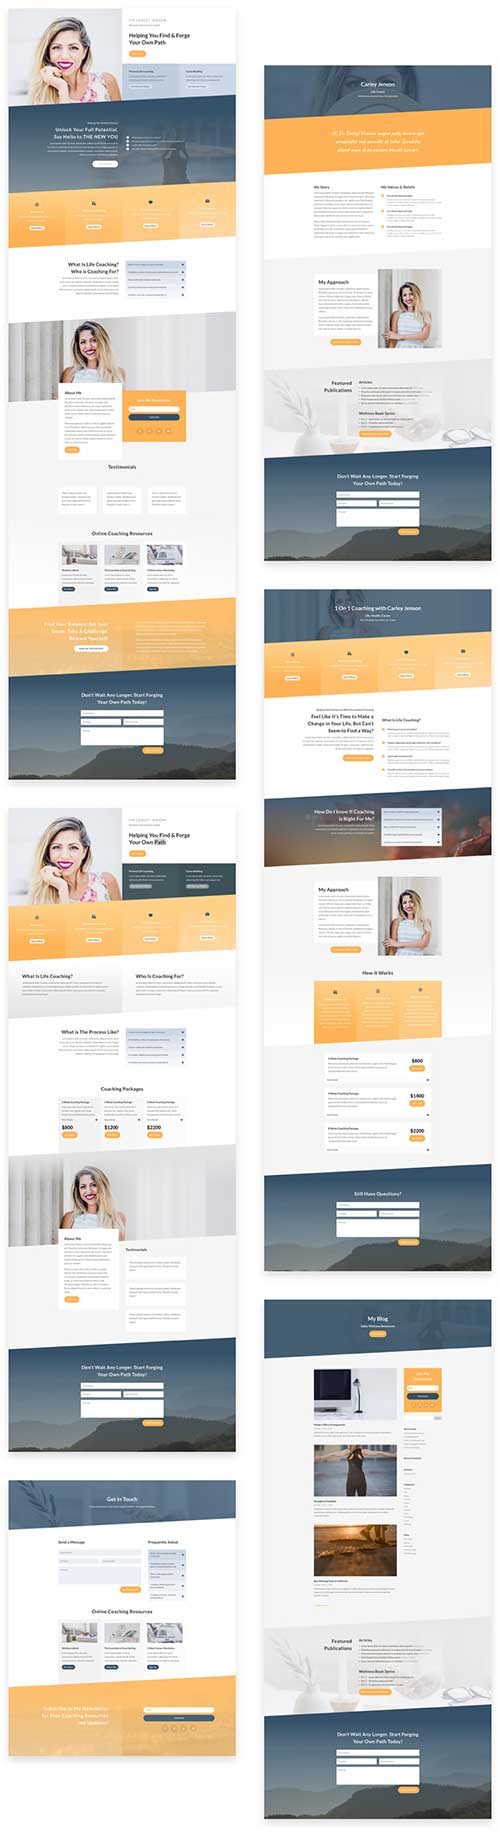 free Divi layout for Life Coach